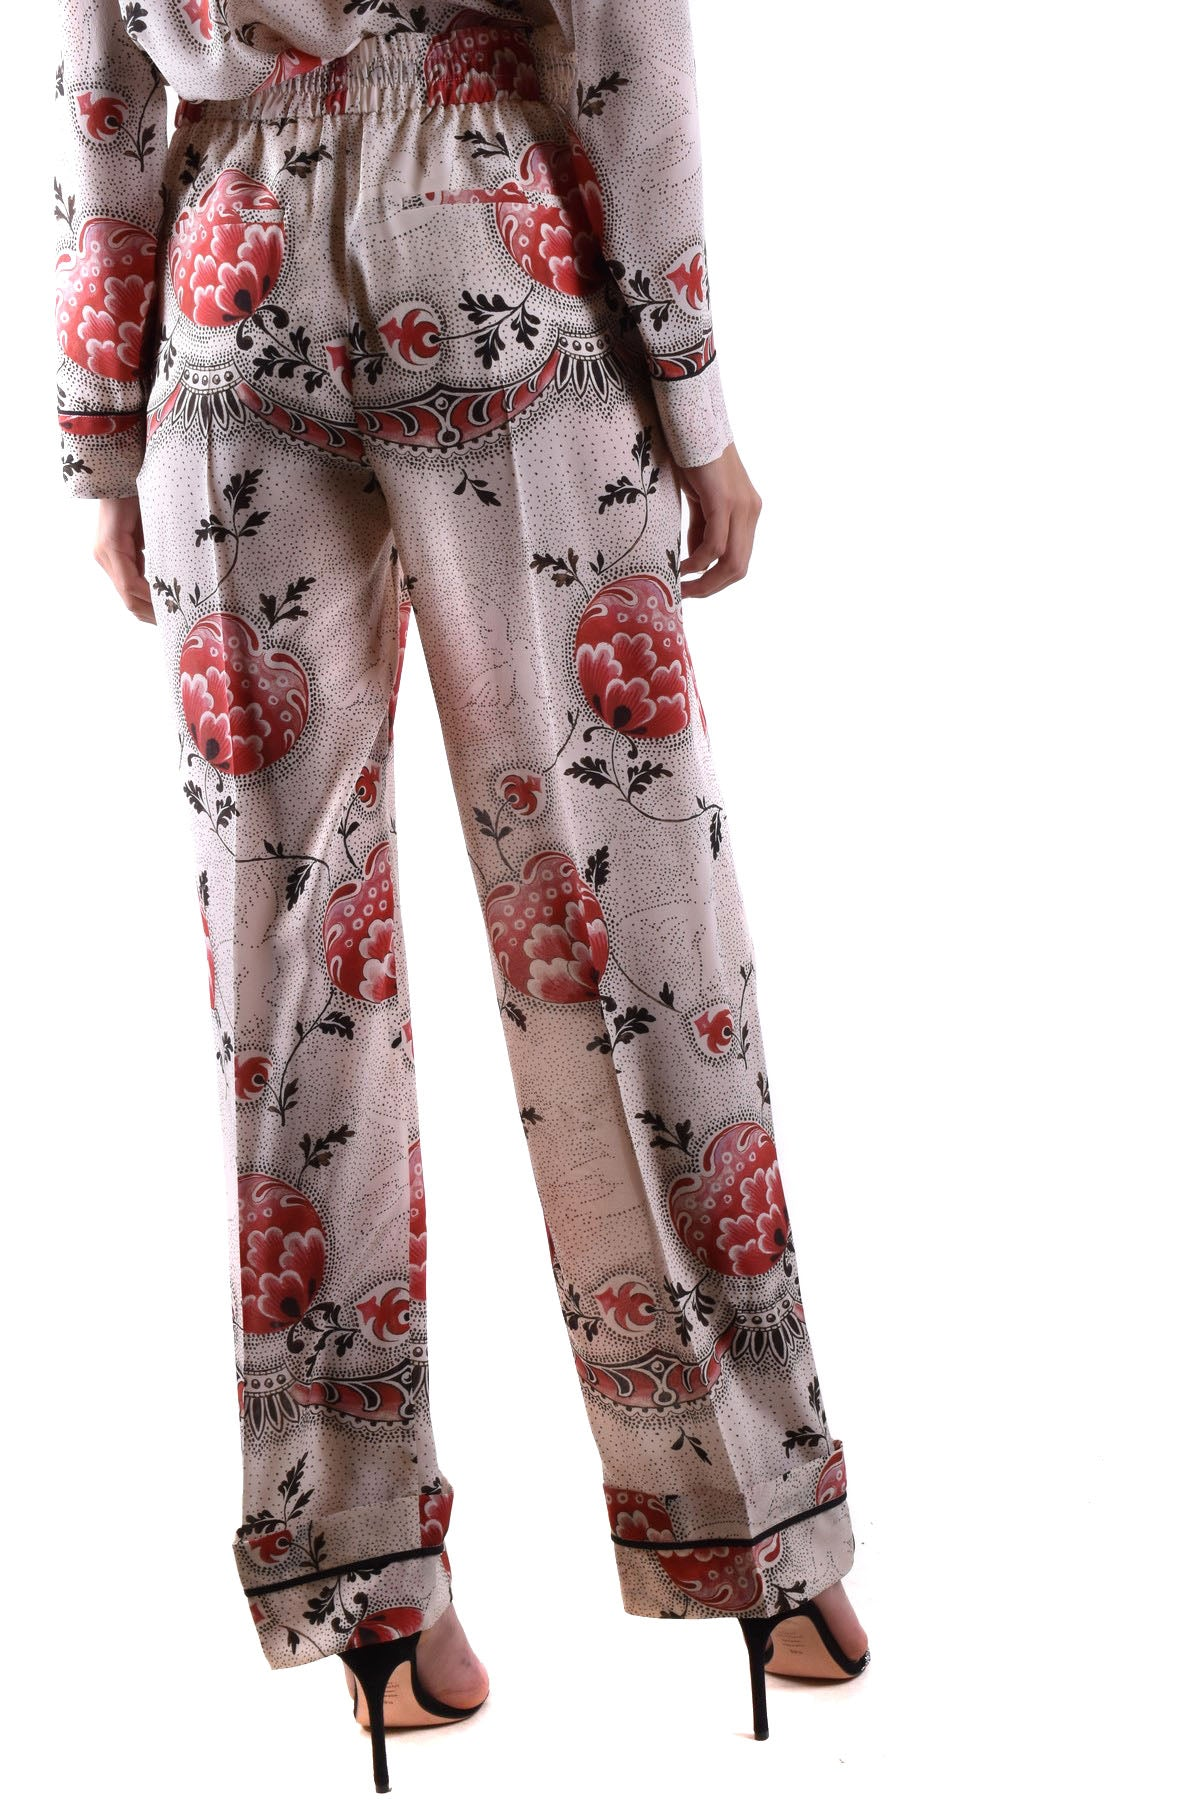 Trousers R.E.D. Valentino-Women's Fashion - Women's Clothing - Bottoms - Pants & Capris-Product Details Terms: New With LabelClothing Type: TrousersMain Color: MulticolorSeason: Spring / SummerMade In: HungaryGender: WomanSize: ItComposition: Silk 100%Year: 2020Manufacturer Part Number: Tr3Rbc20 4S2-Keyomi-Sook